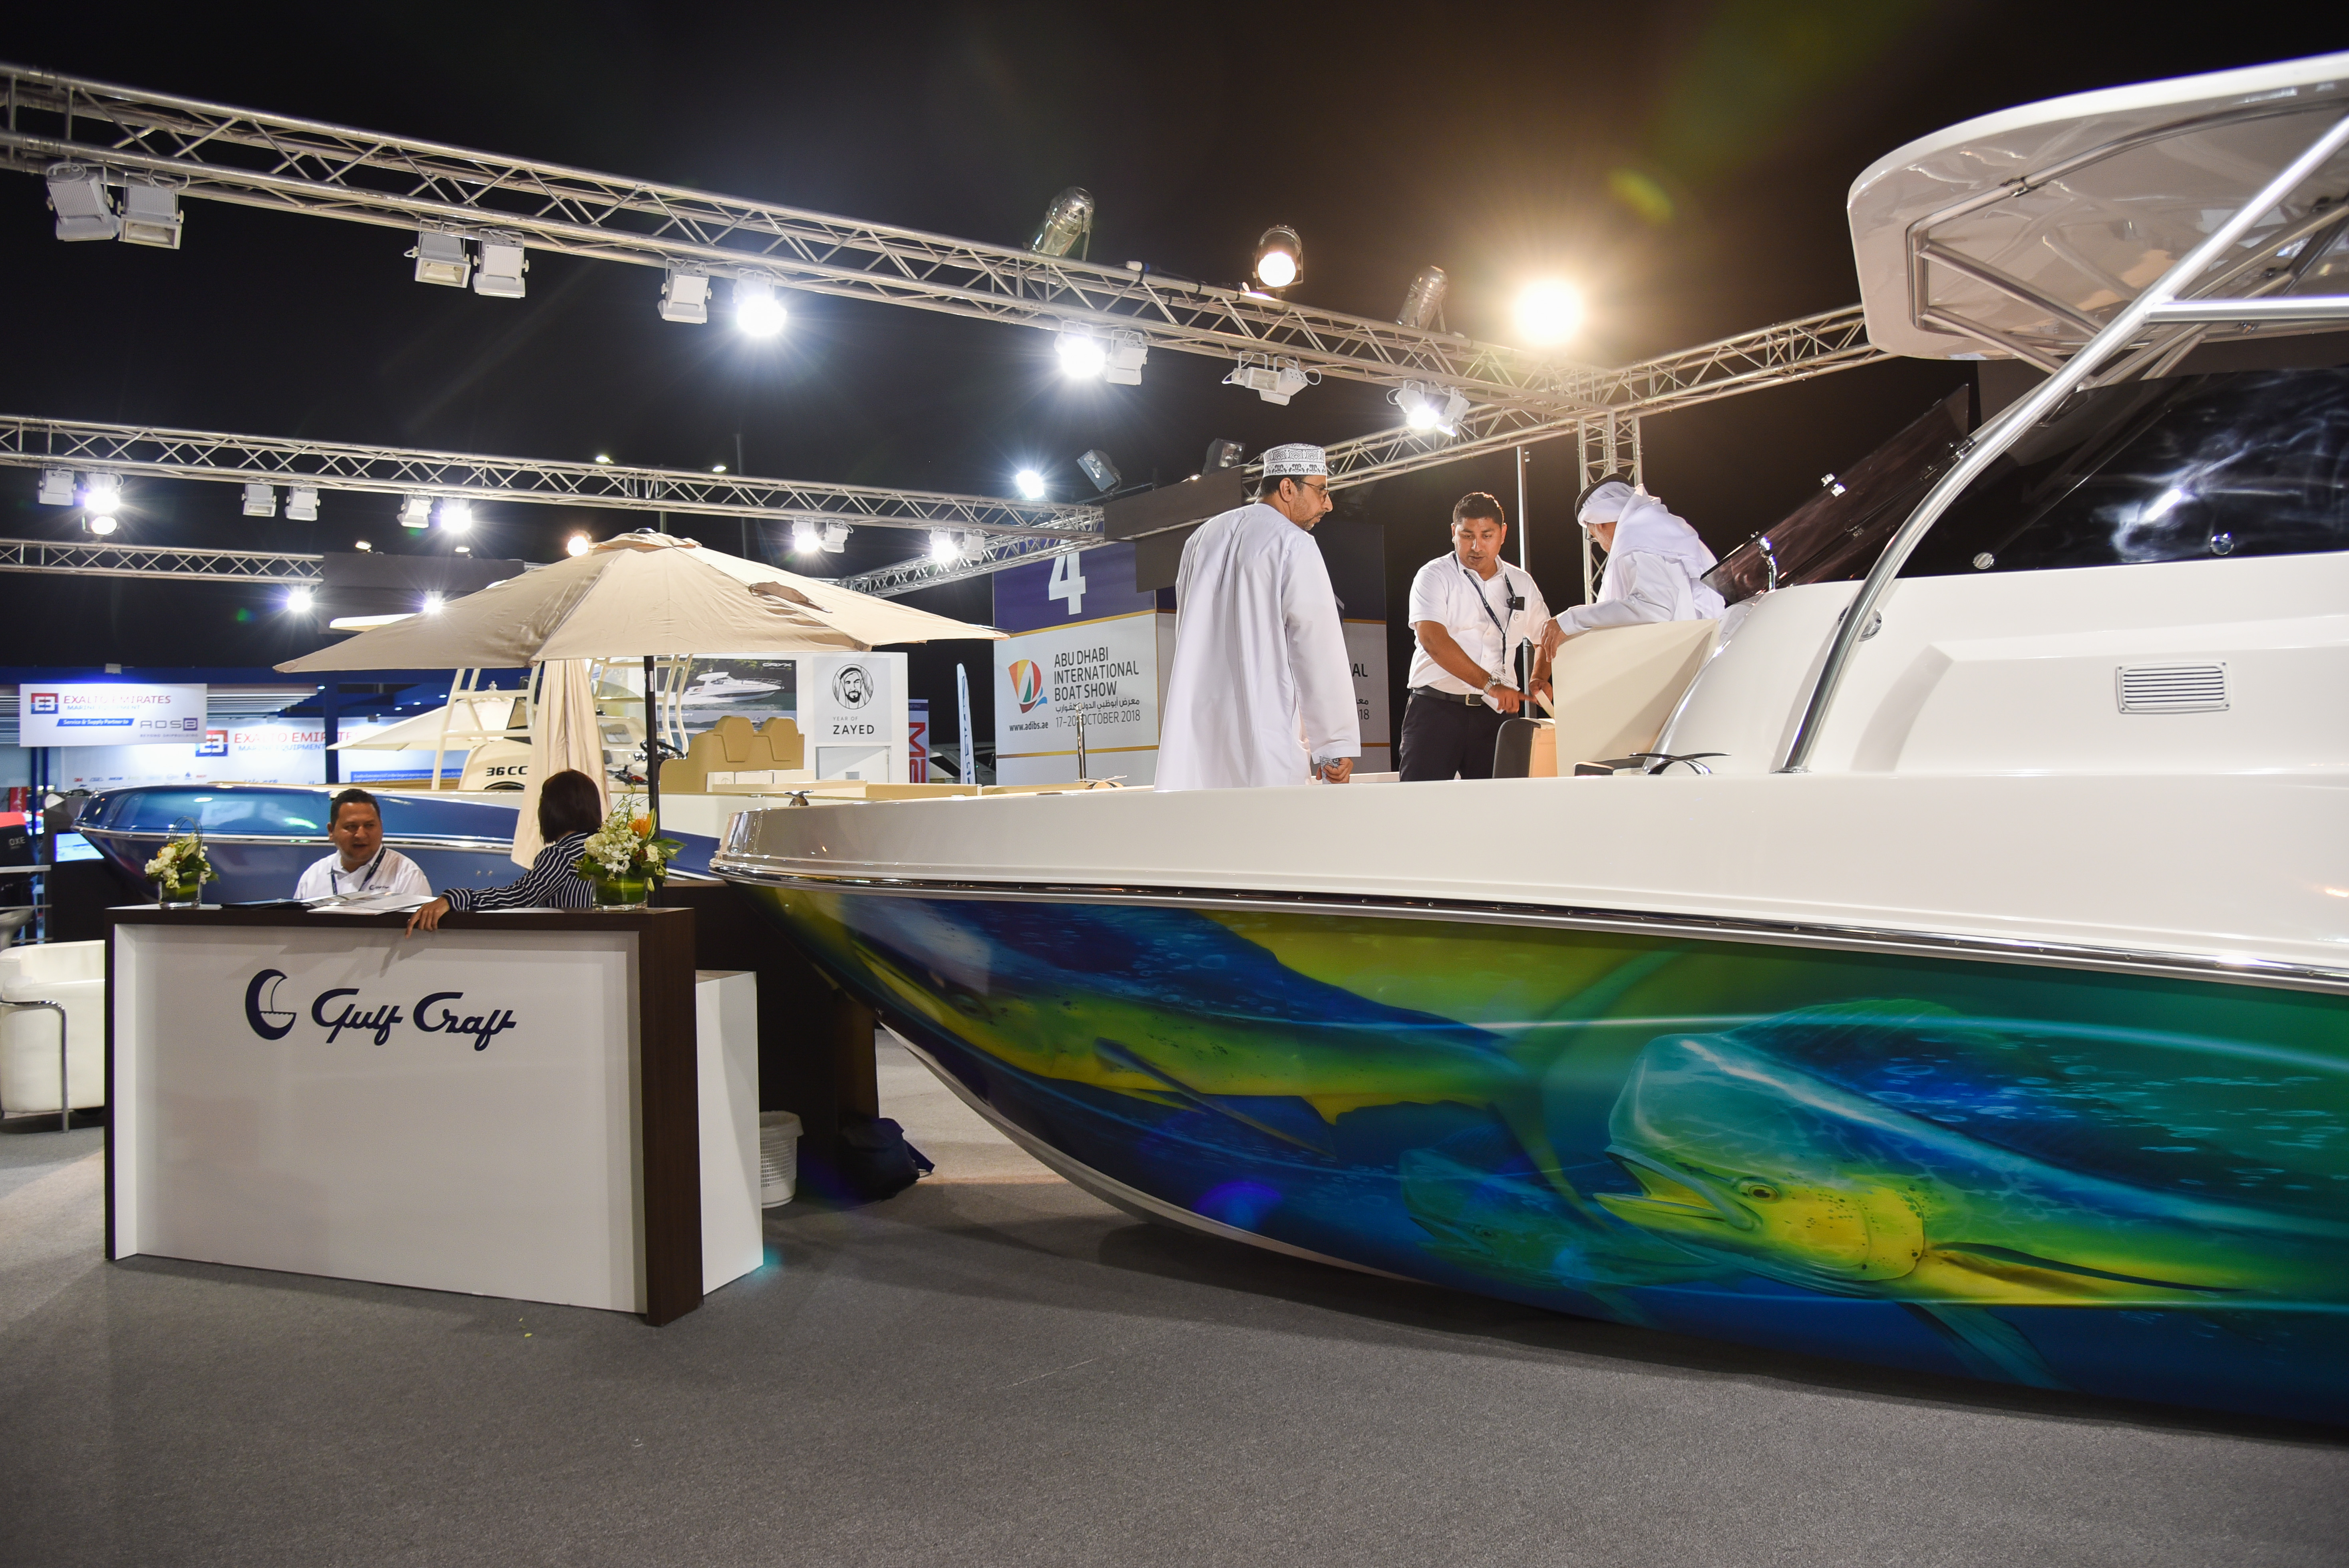 Gulf Craft at Abu Dhabi Boat Show 2018 Day 2(21).jpg